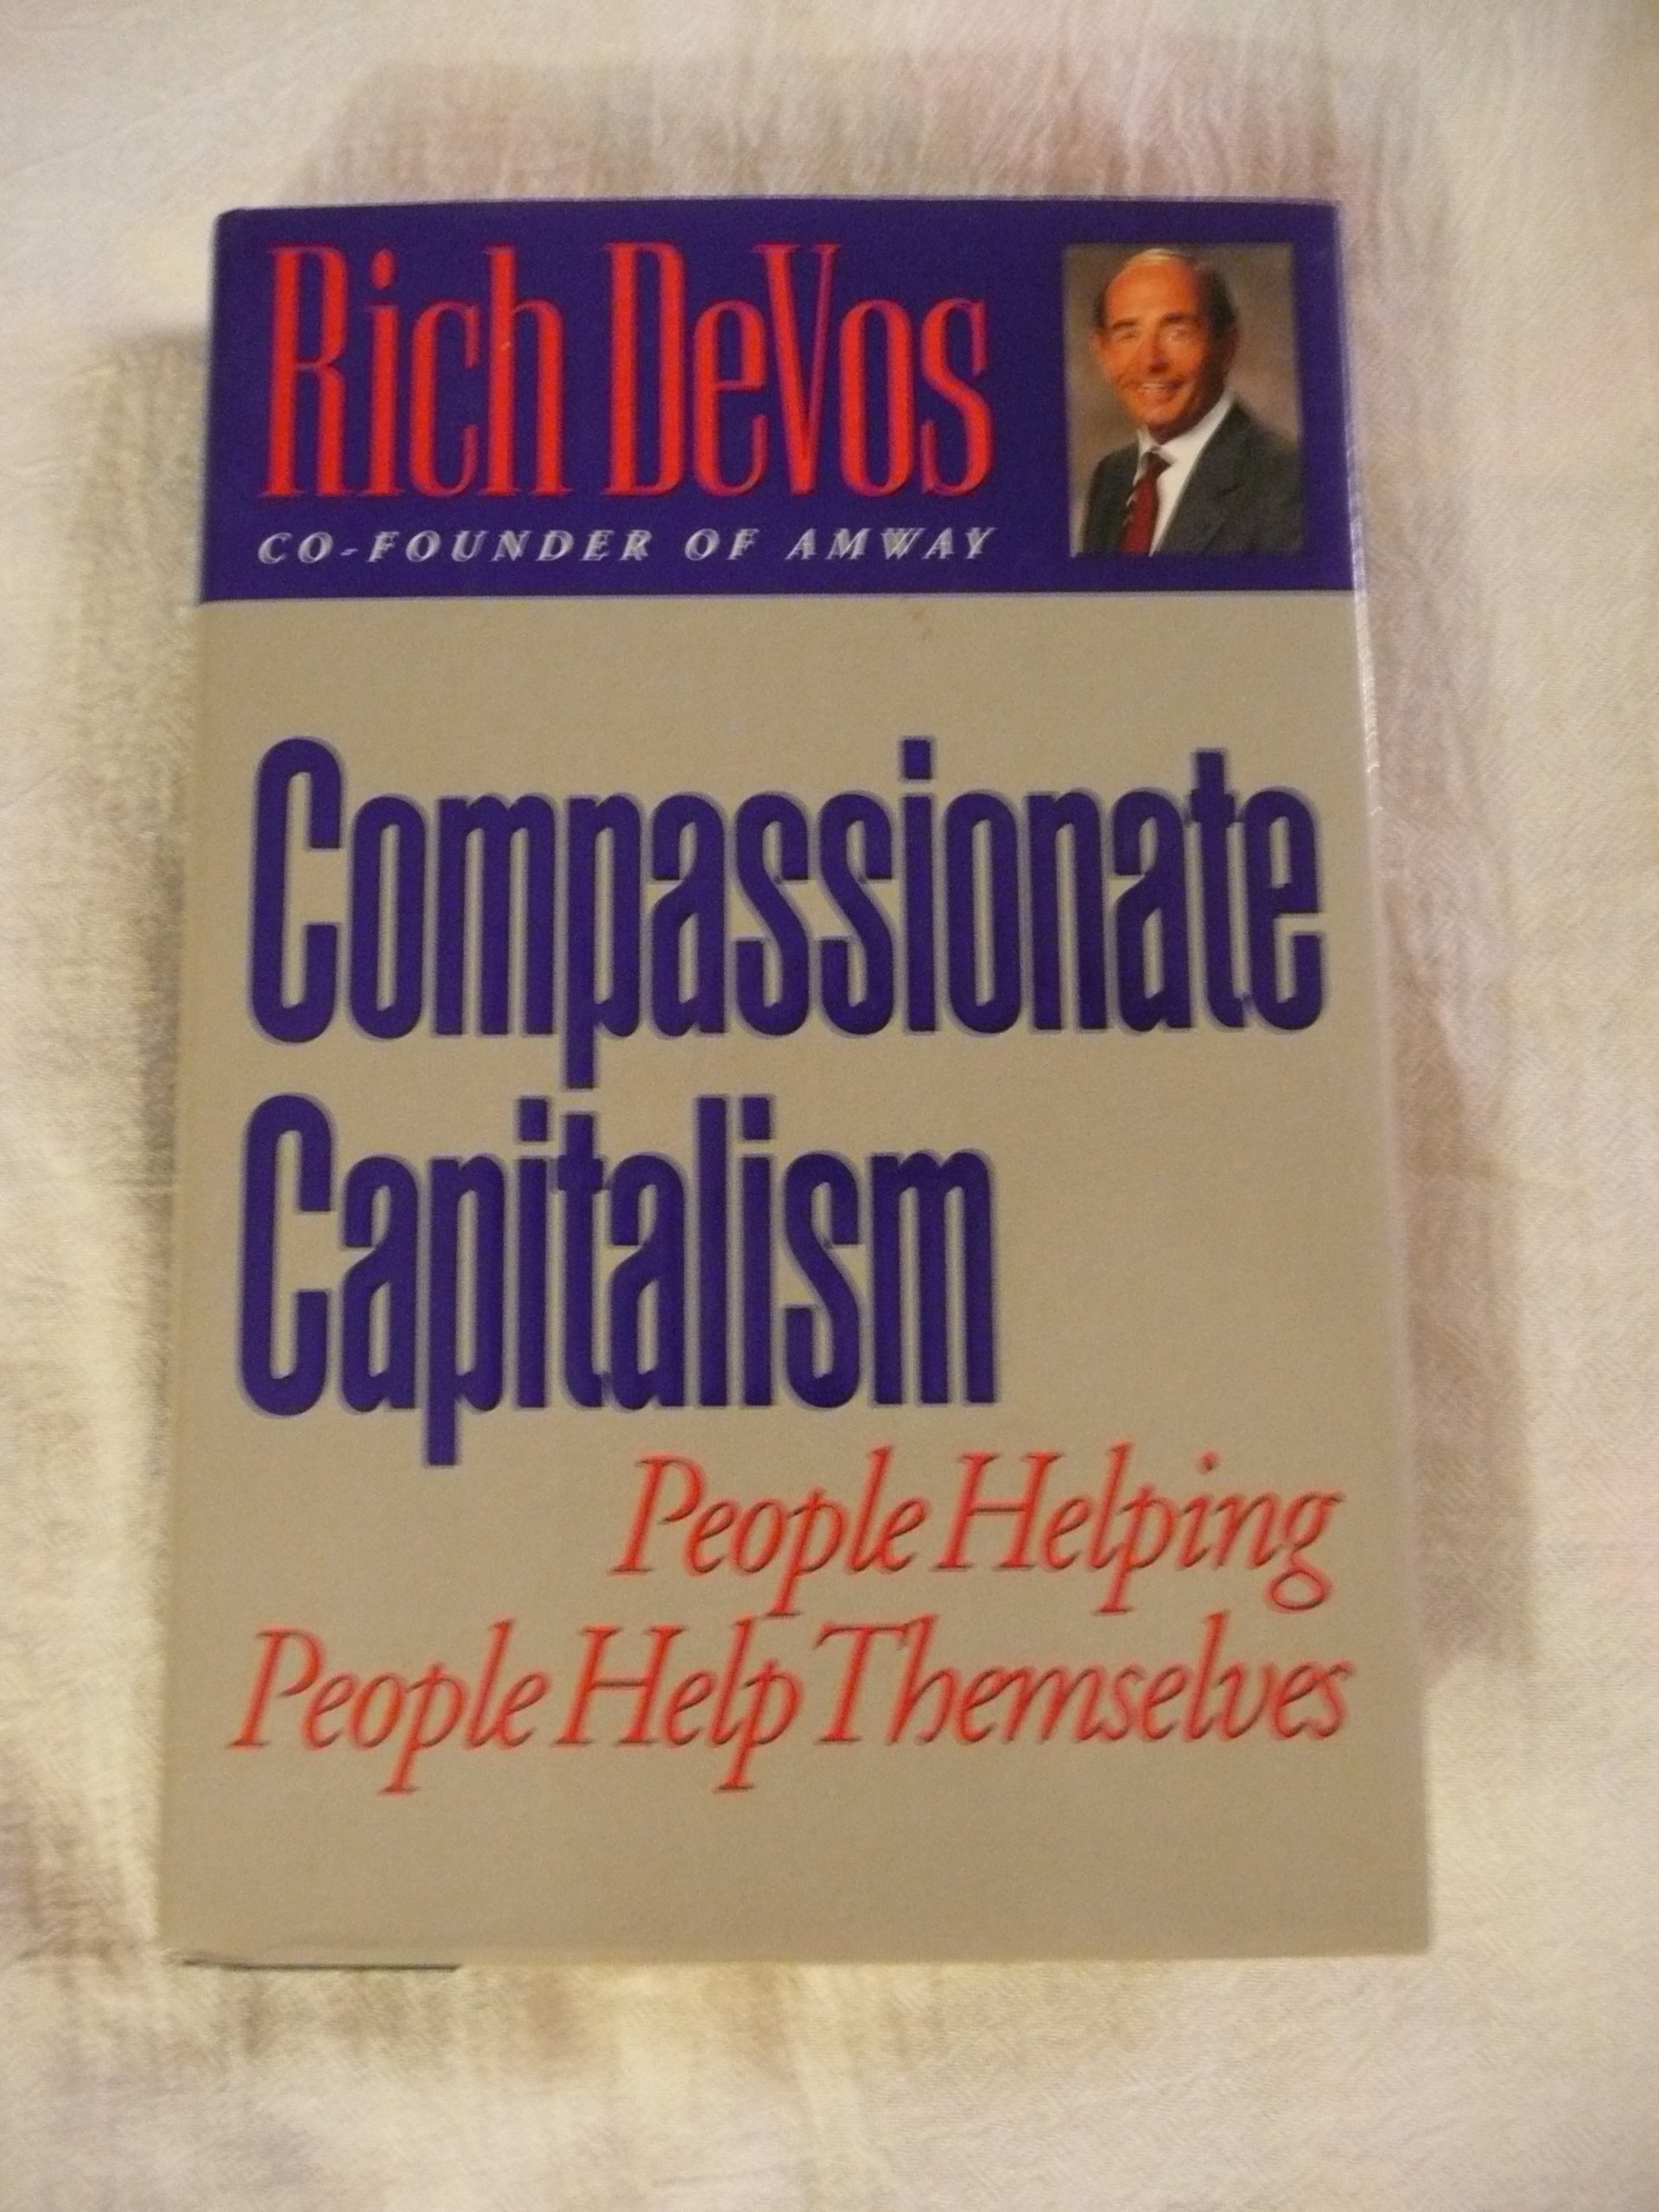 Compassionate capitalism people helping people help themselves compassionate capitalism people helping people help themselves rich devos 9780525935674 amazon books fandeluxe Choice Image